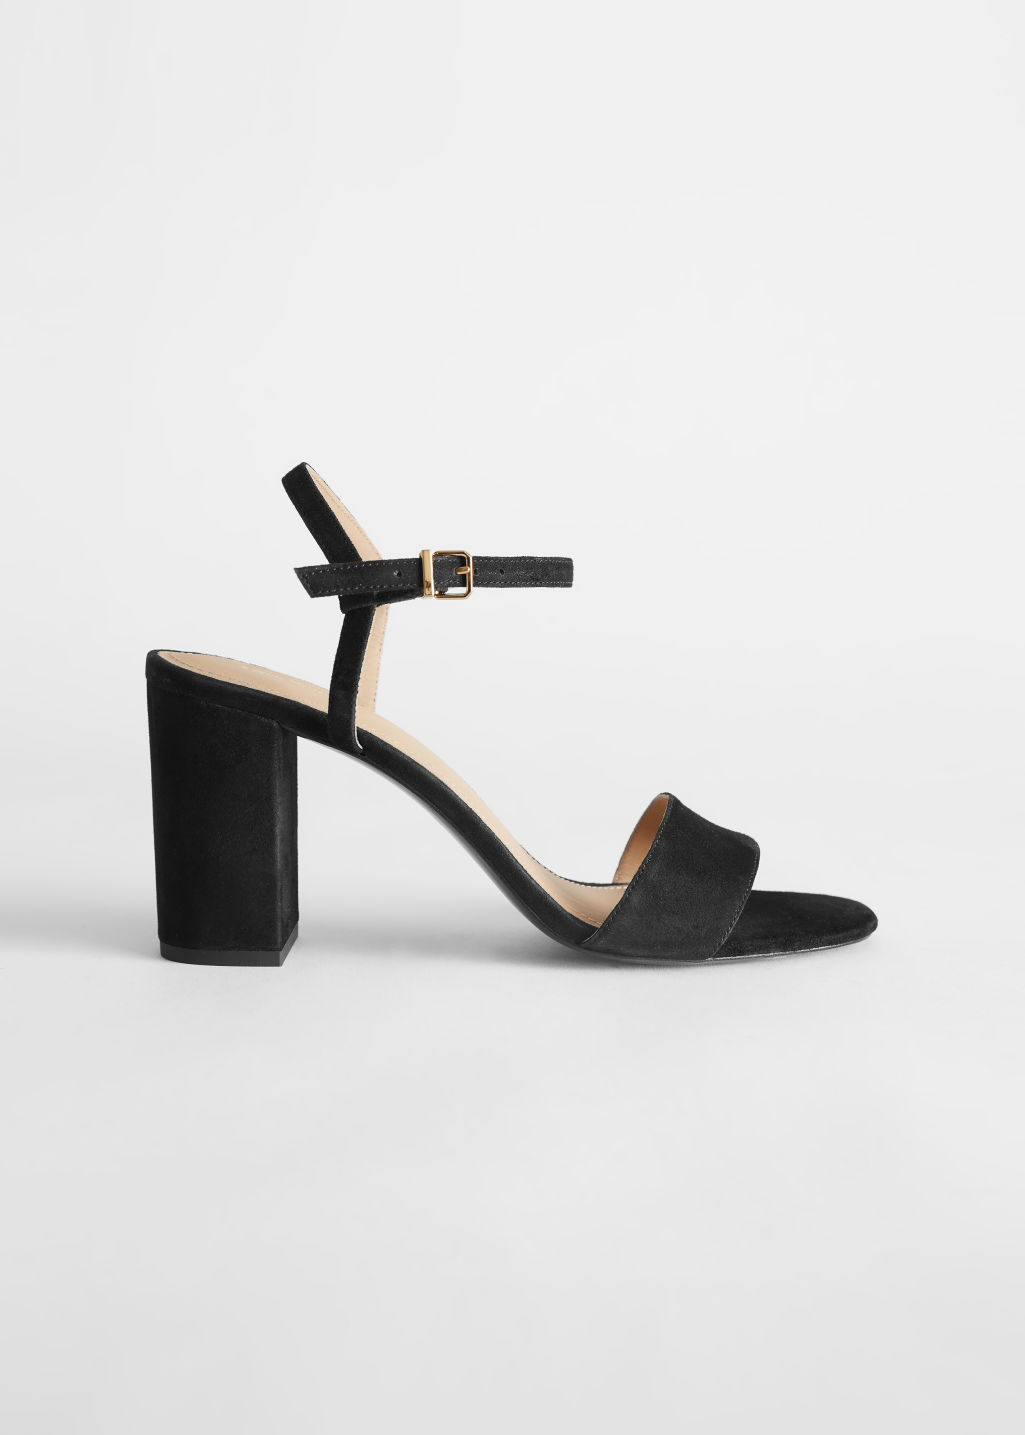 StillLife Left Image of Stories Strappy Block Heel Suede Sandals in Black